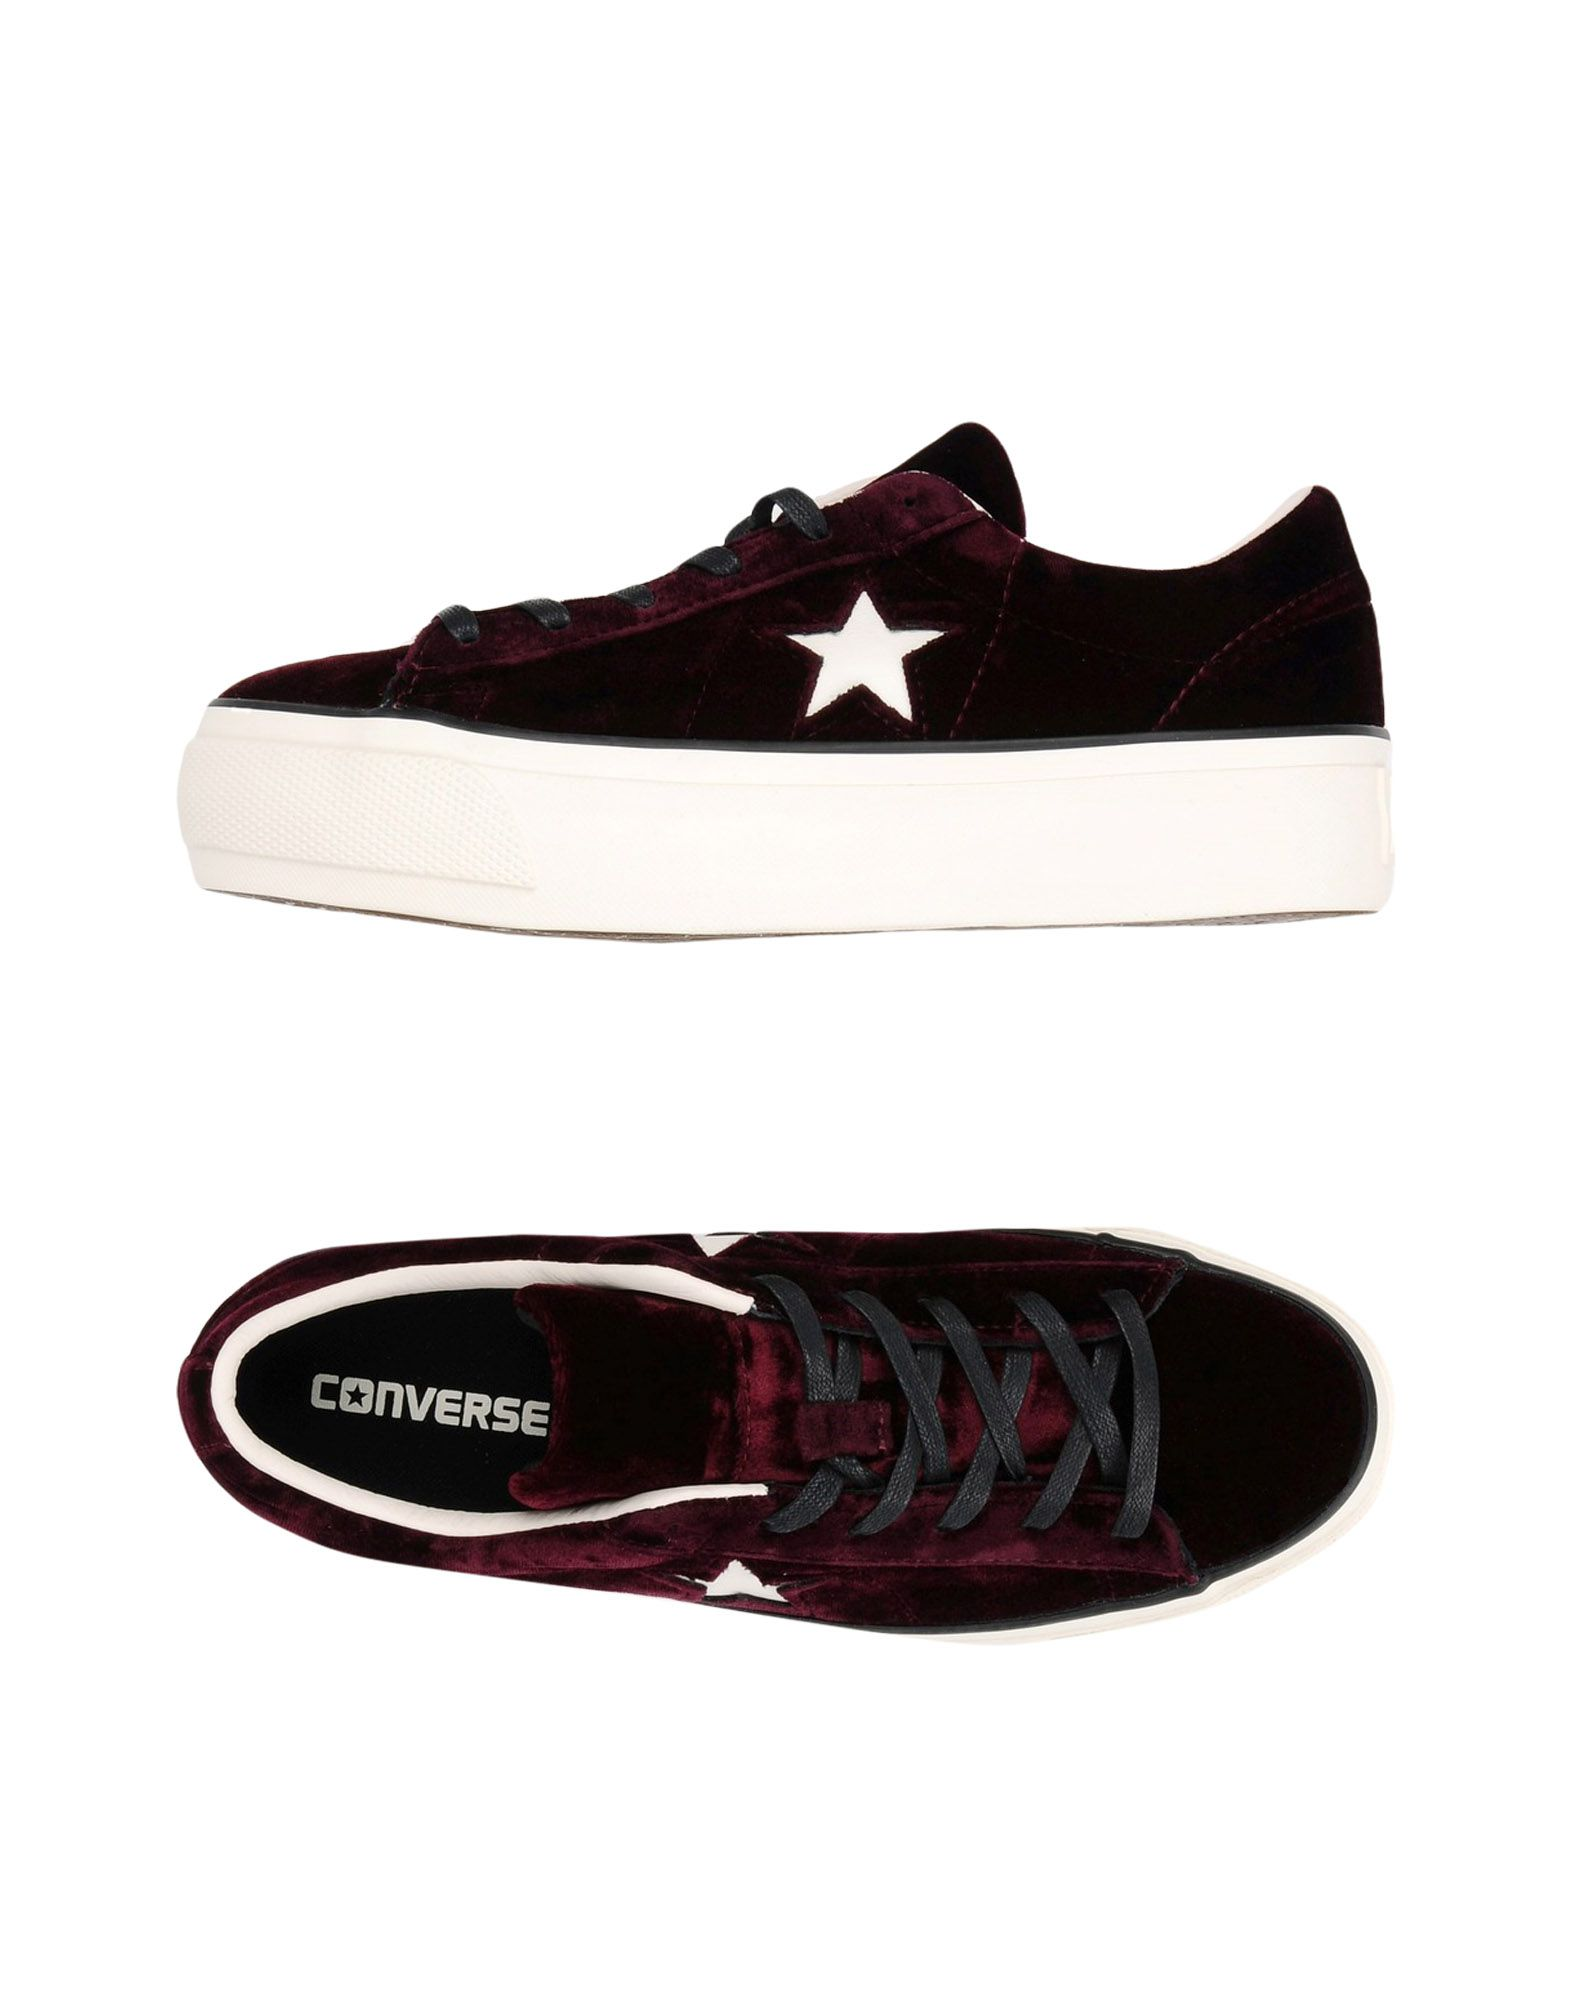 Sneakers Converse All Star One Star Platform Ox Velvet - Donna - 11394446MR